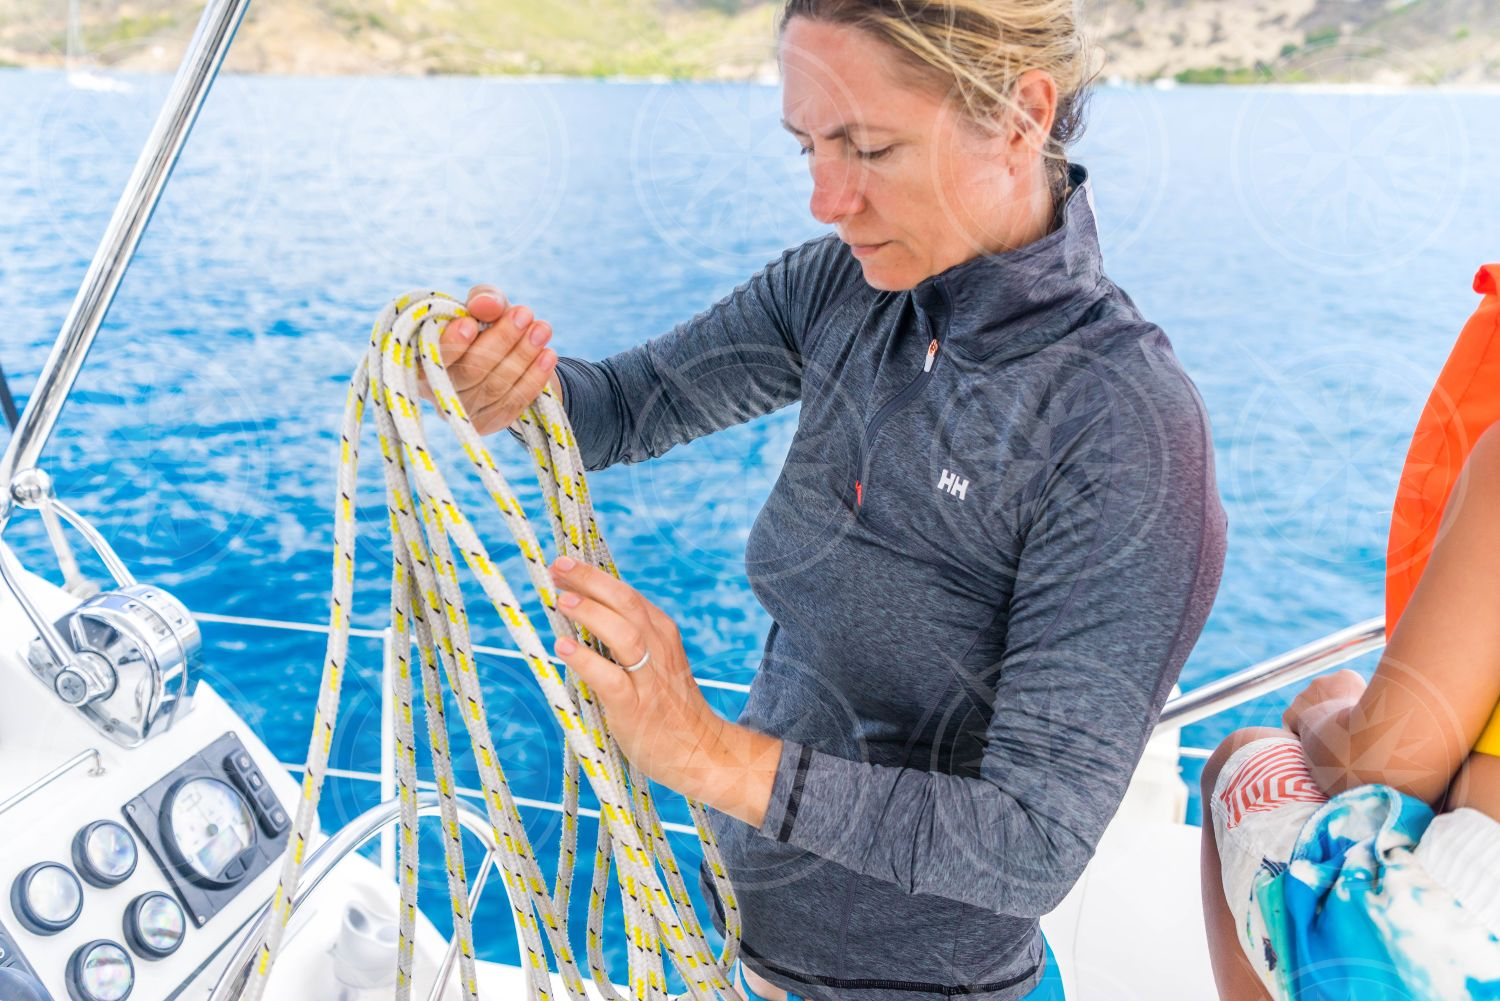 Woman sorting out lines on sailboat